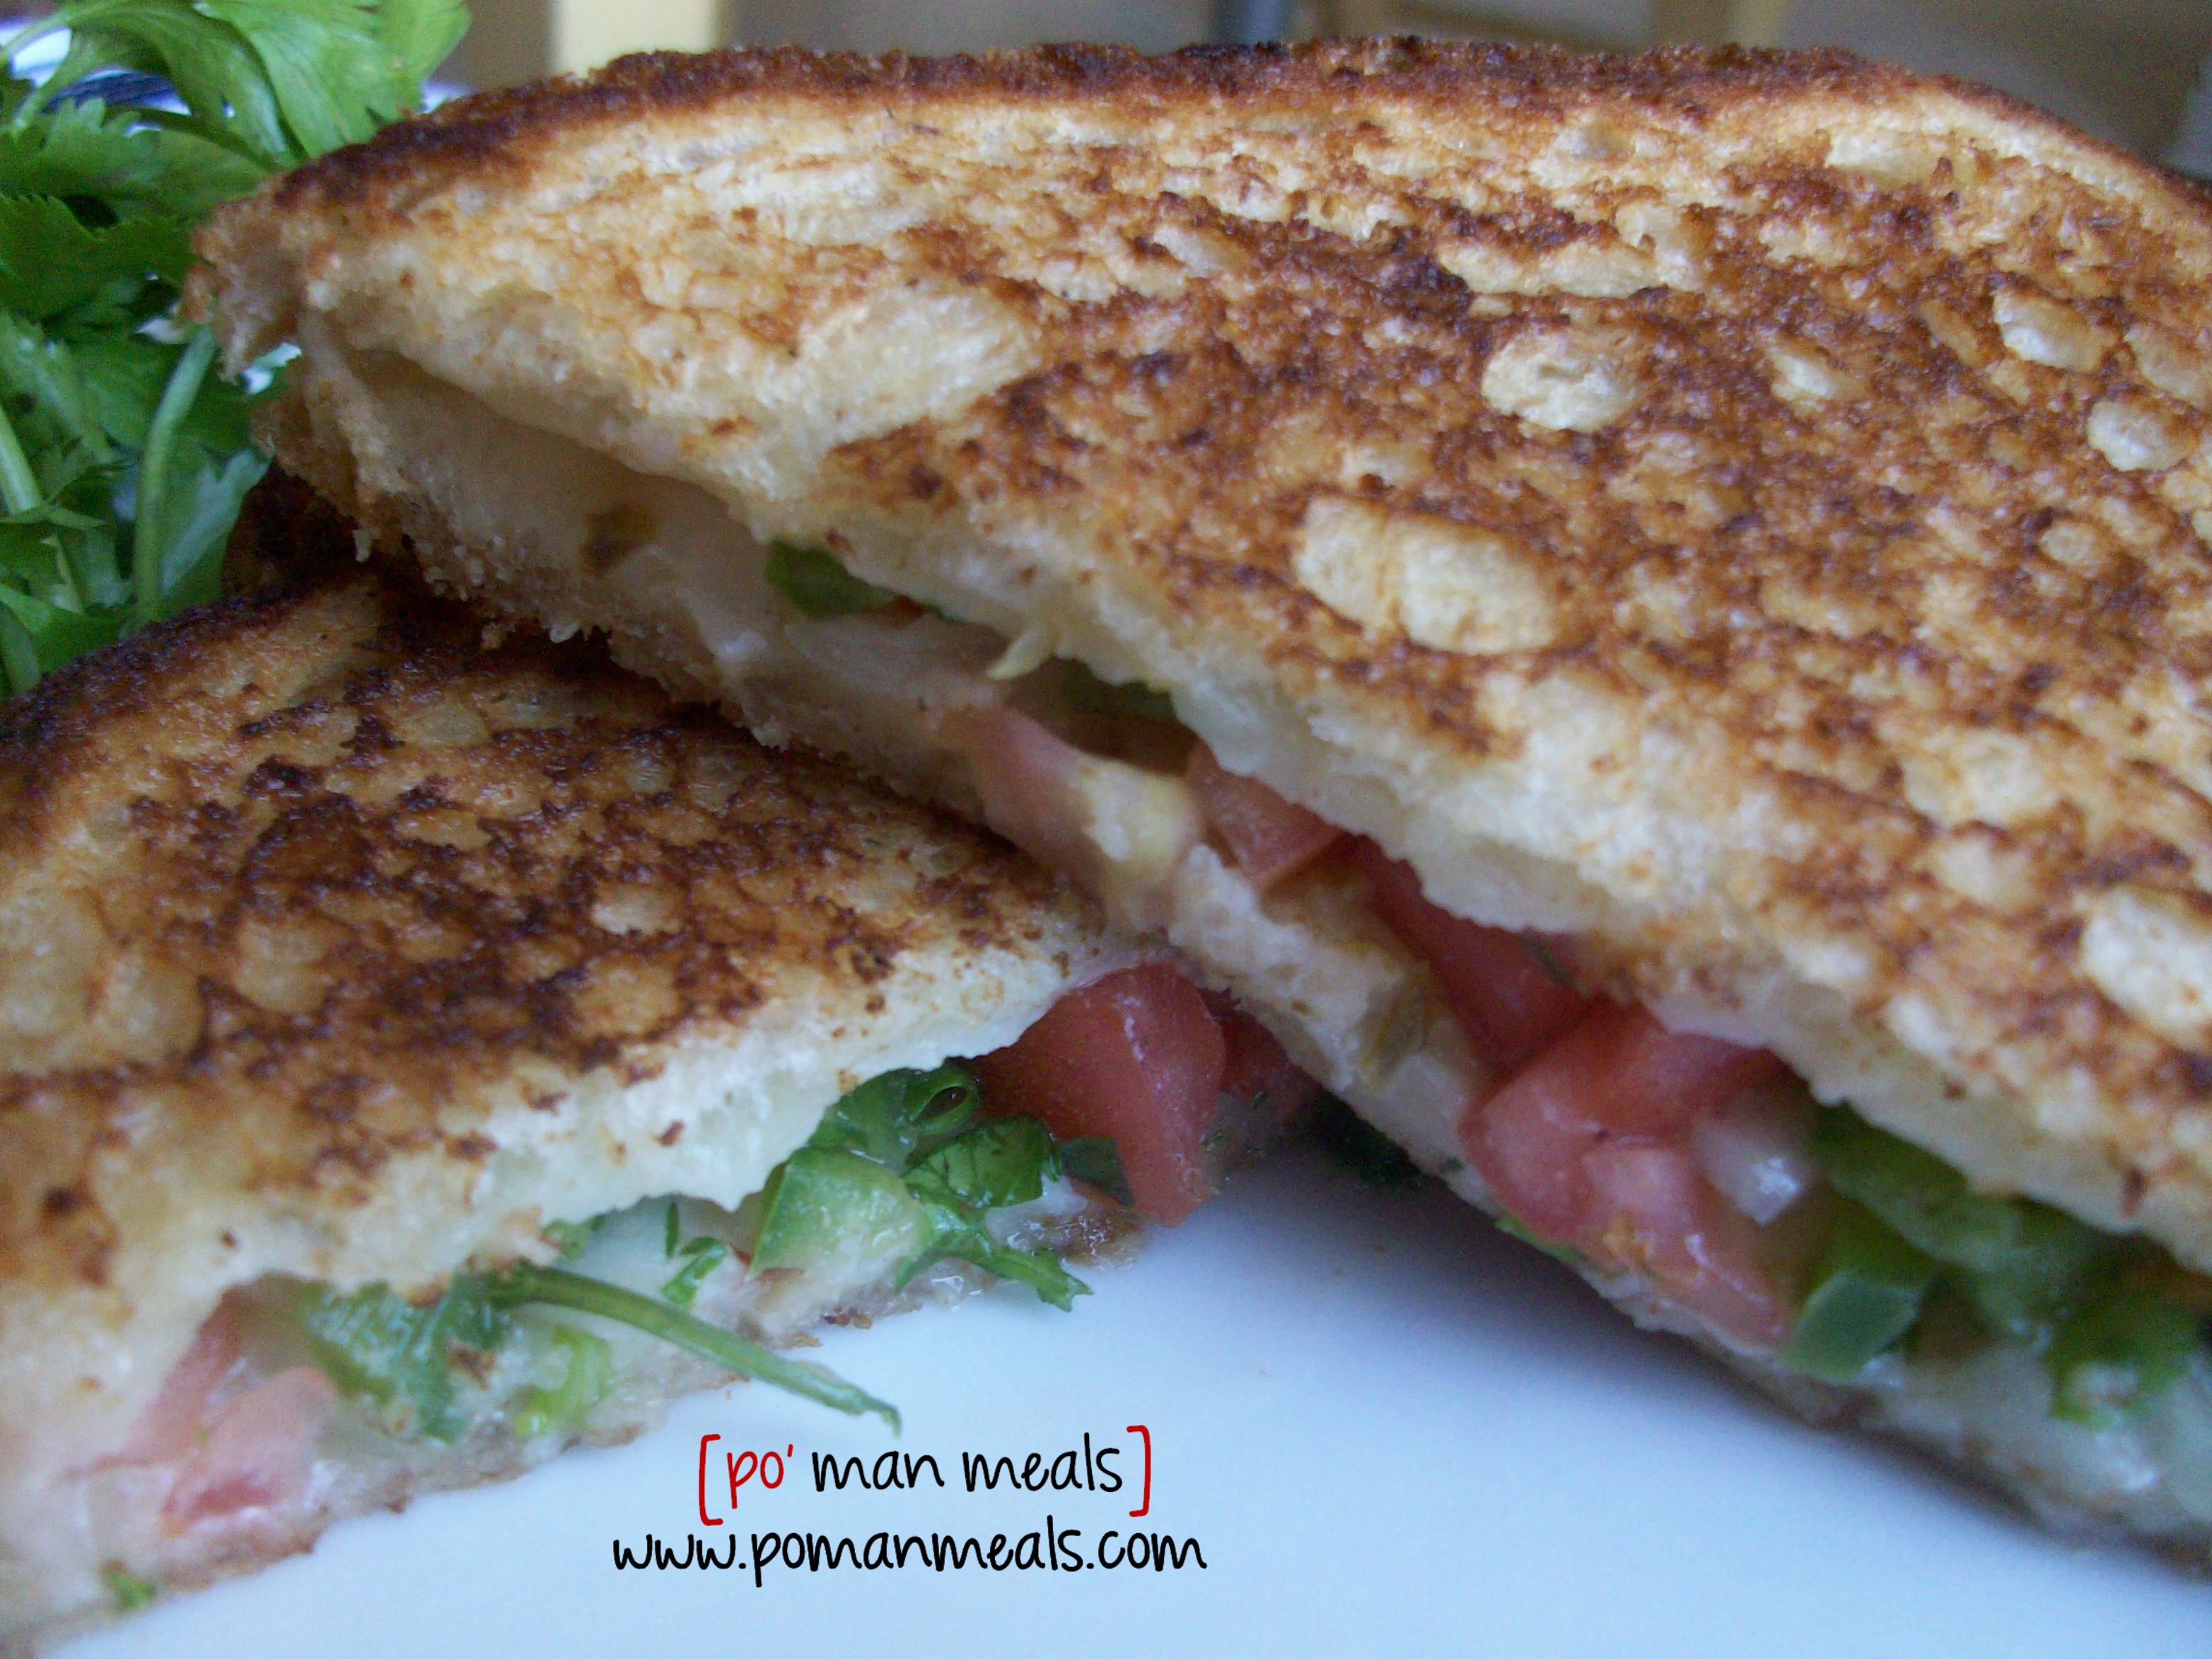 po' man meals - spicy tomato grilled cheese sandwich